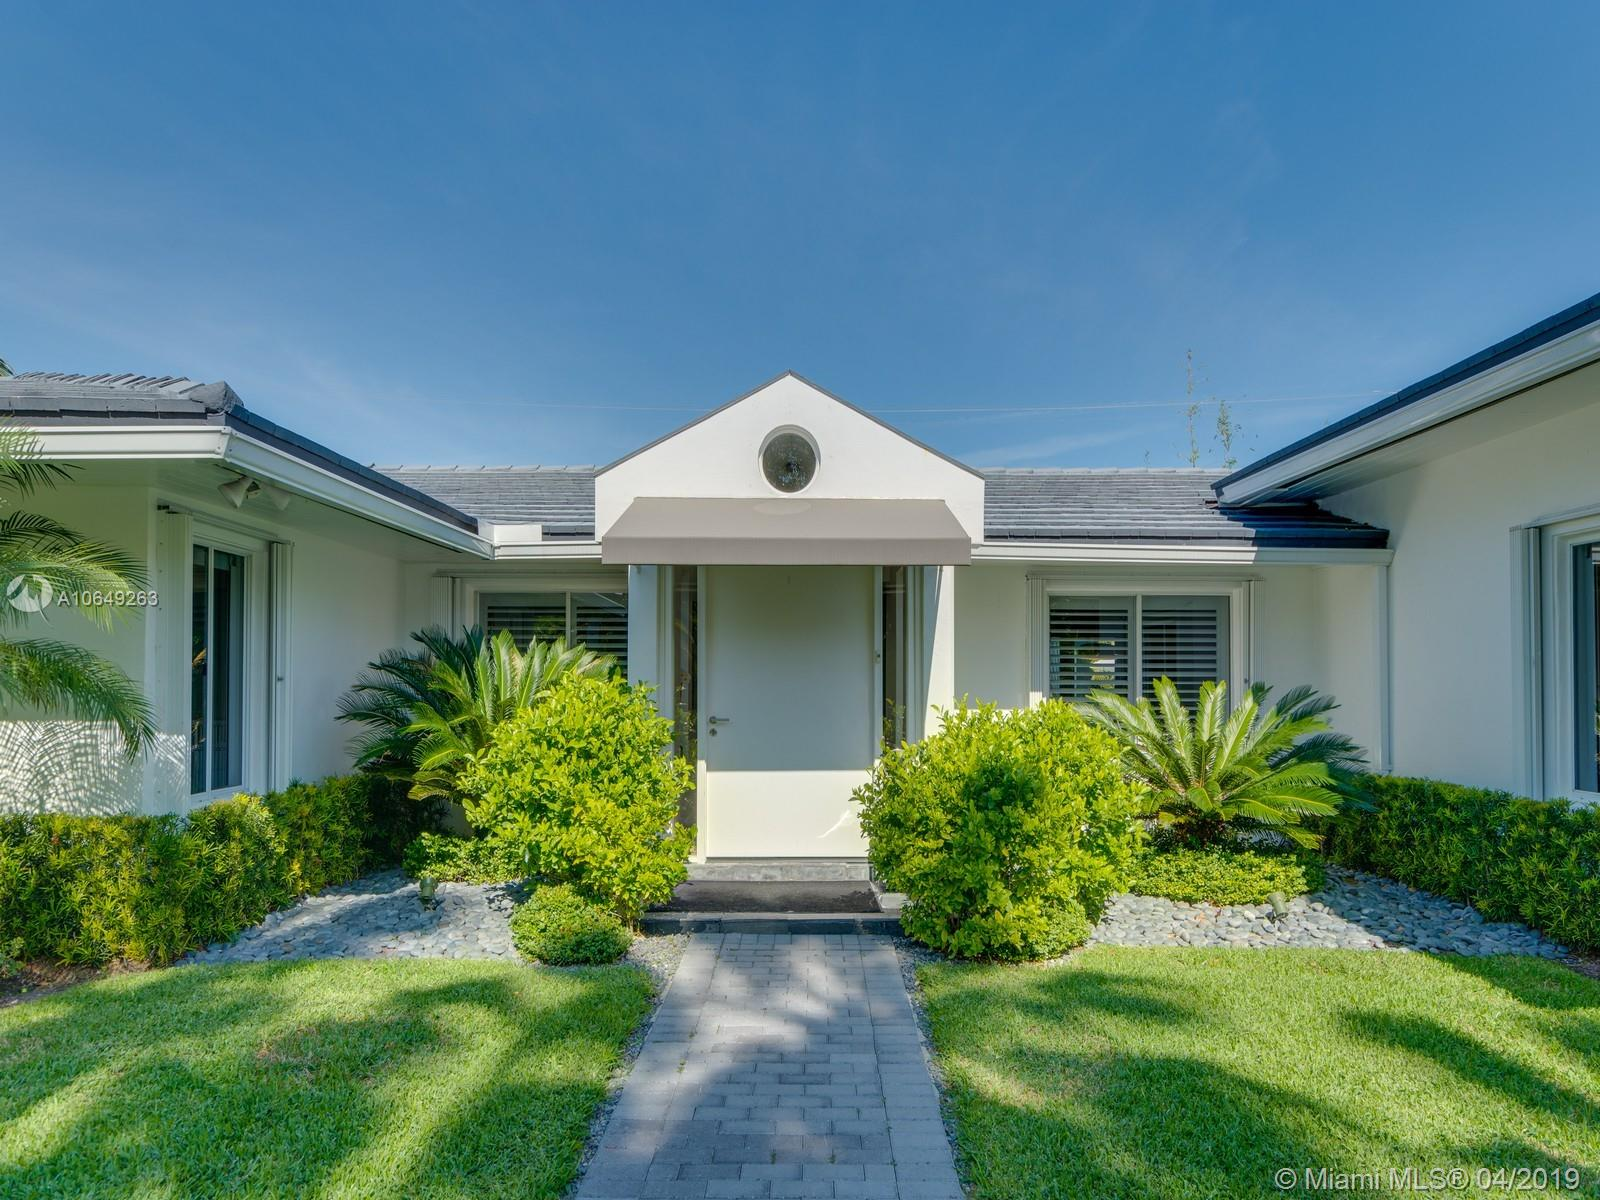 181  ISLAND DR  For Sale A10649263, FL